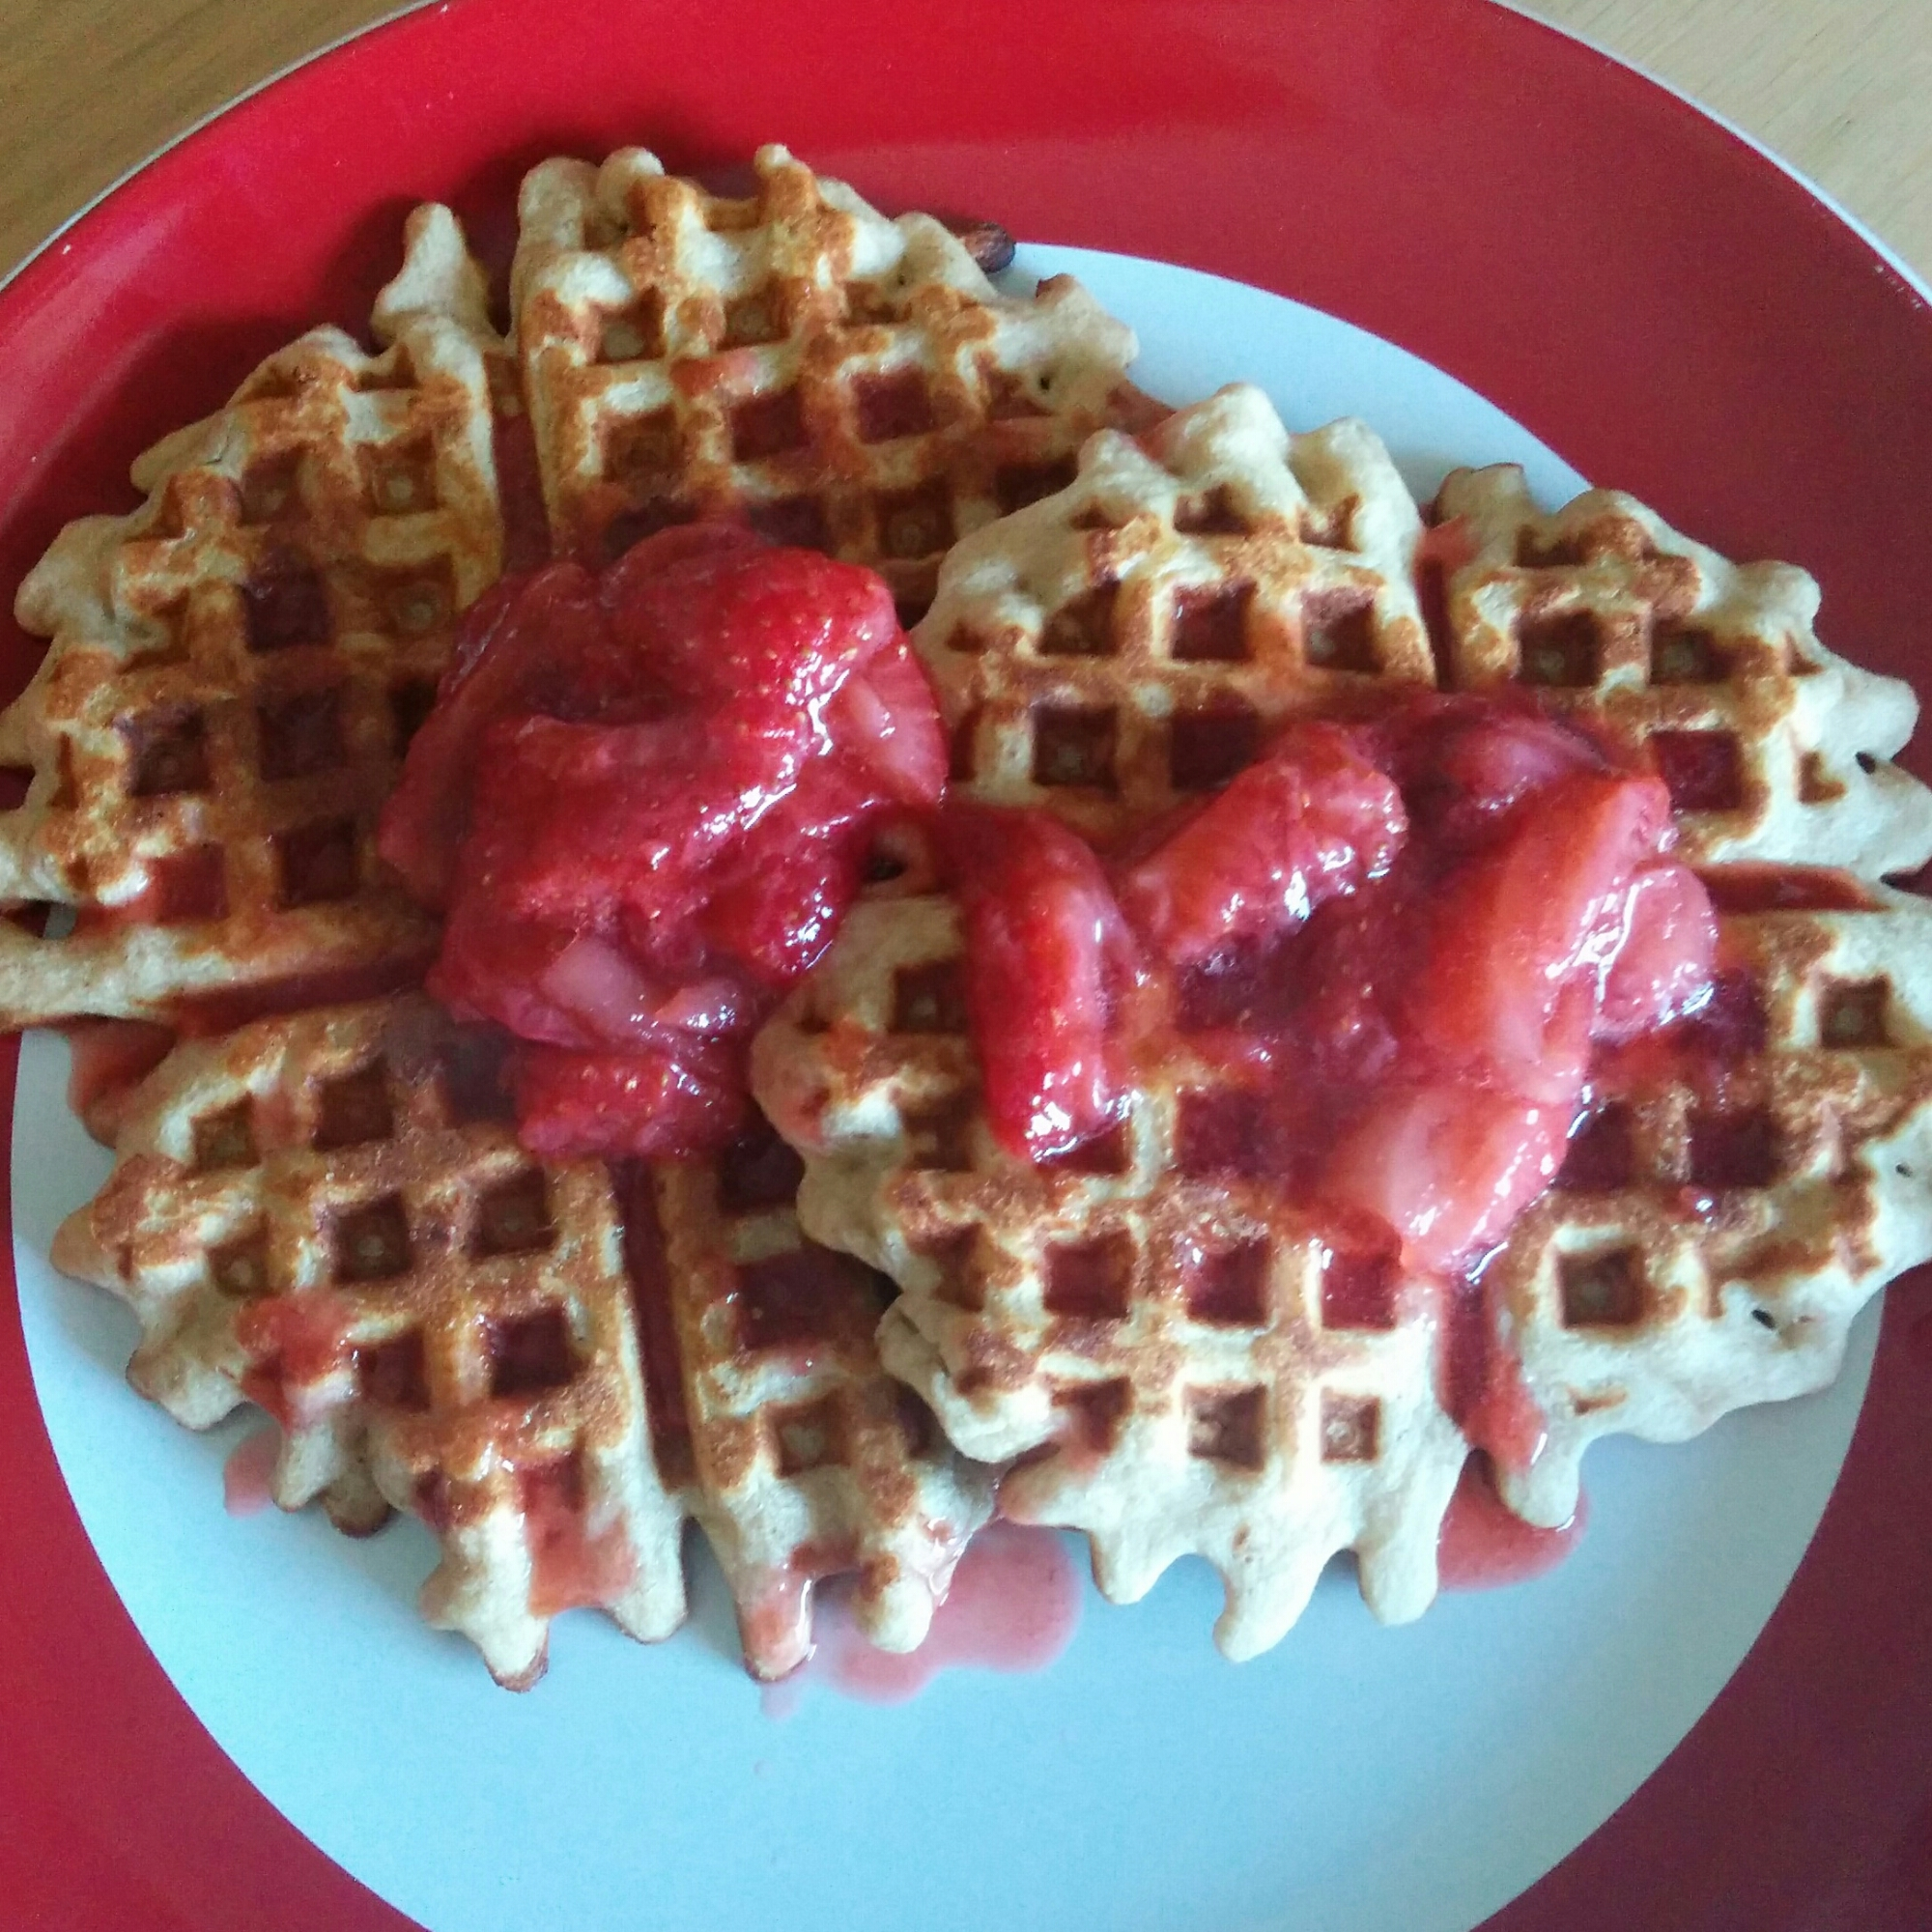 Peanut Butter and Jelly Waffles | xtinaluvspink.wordpress.com